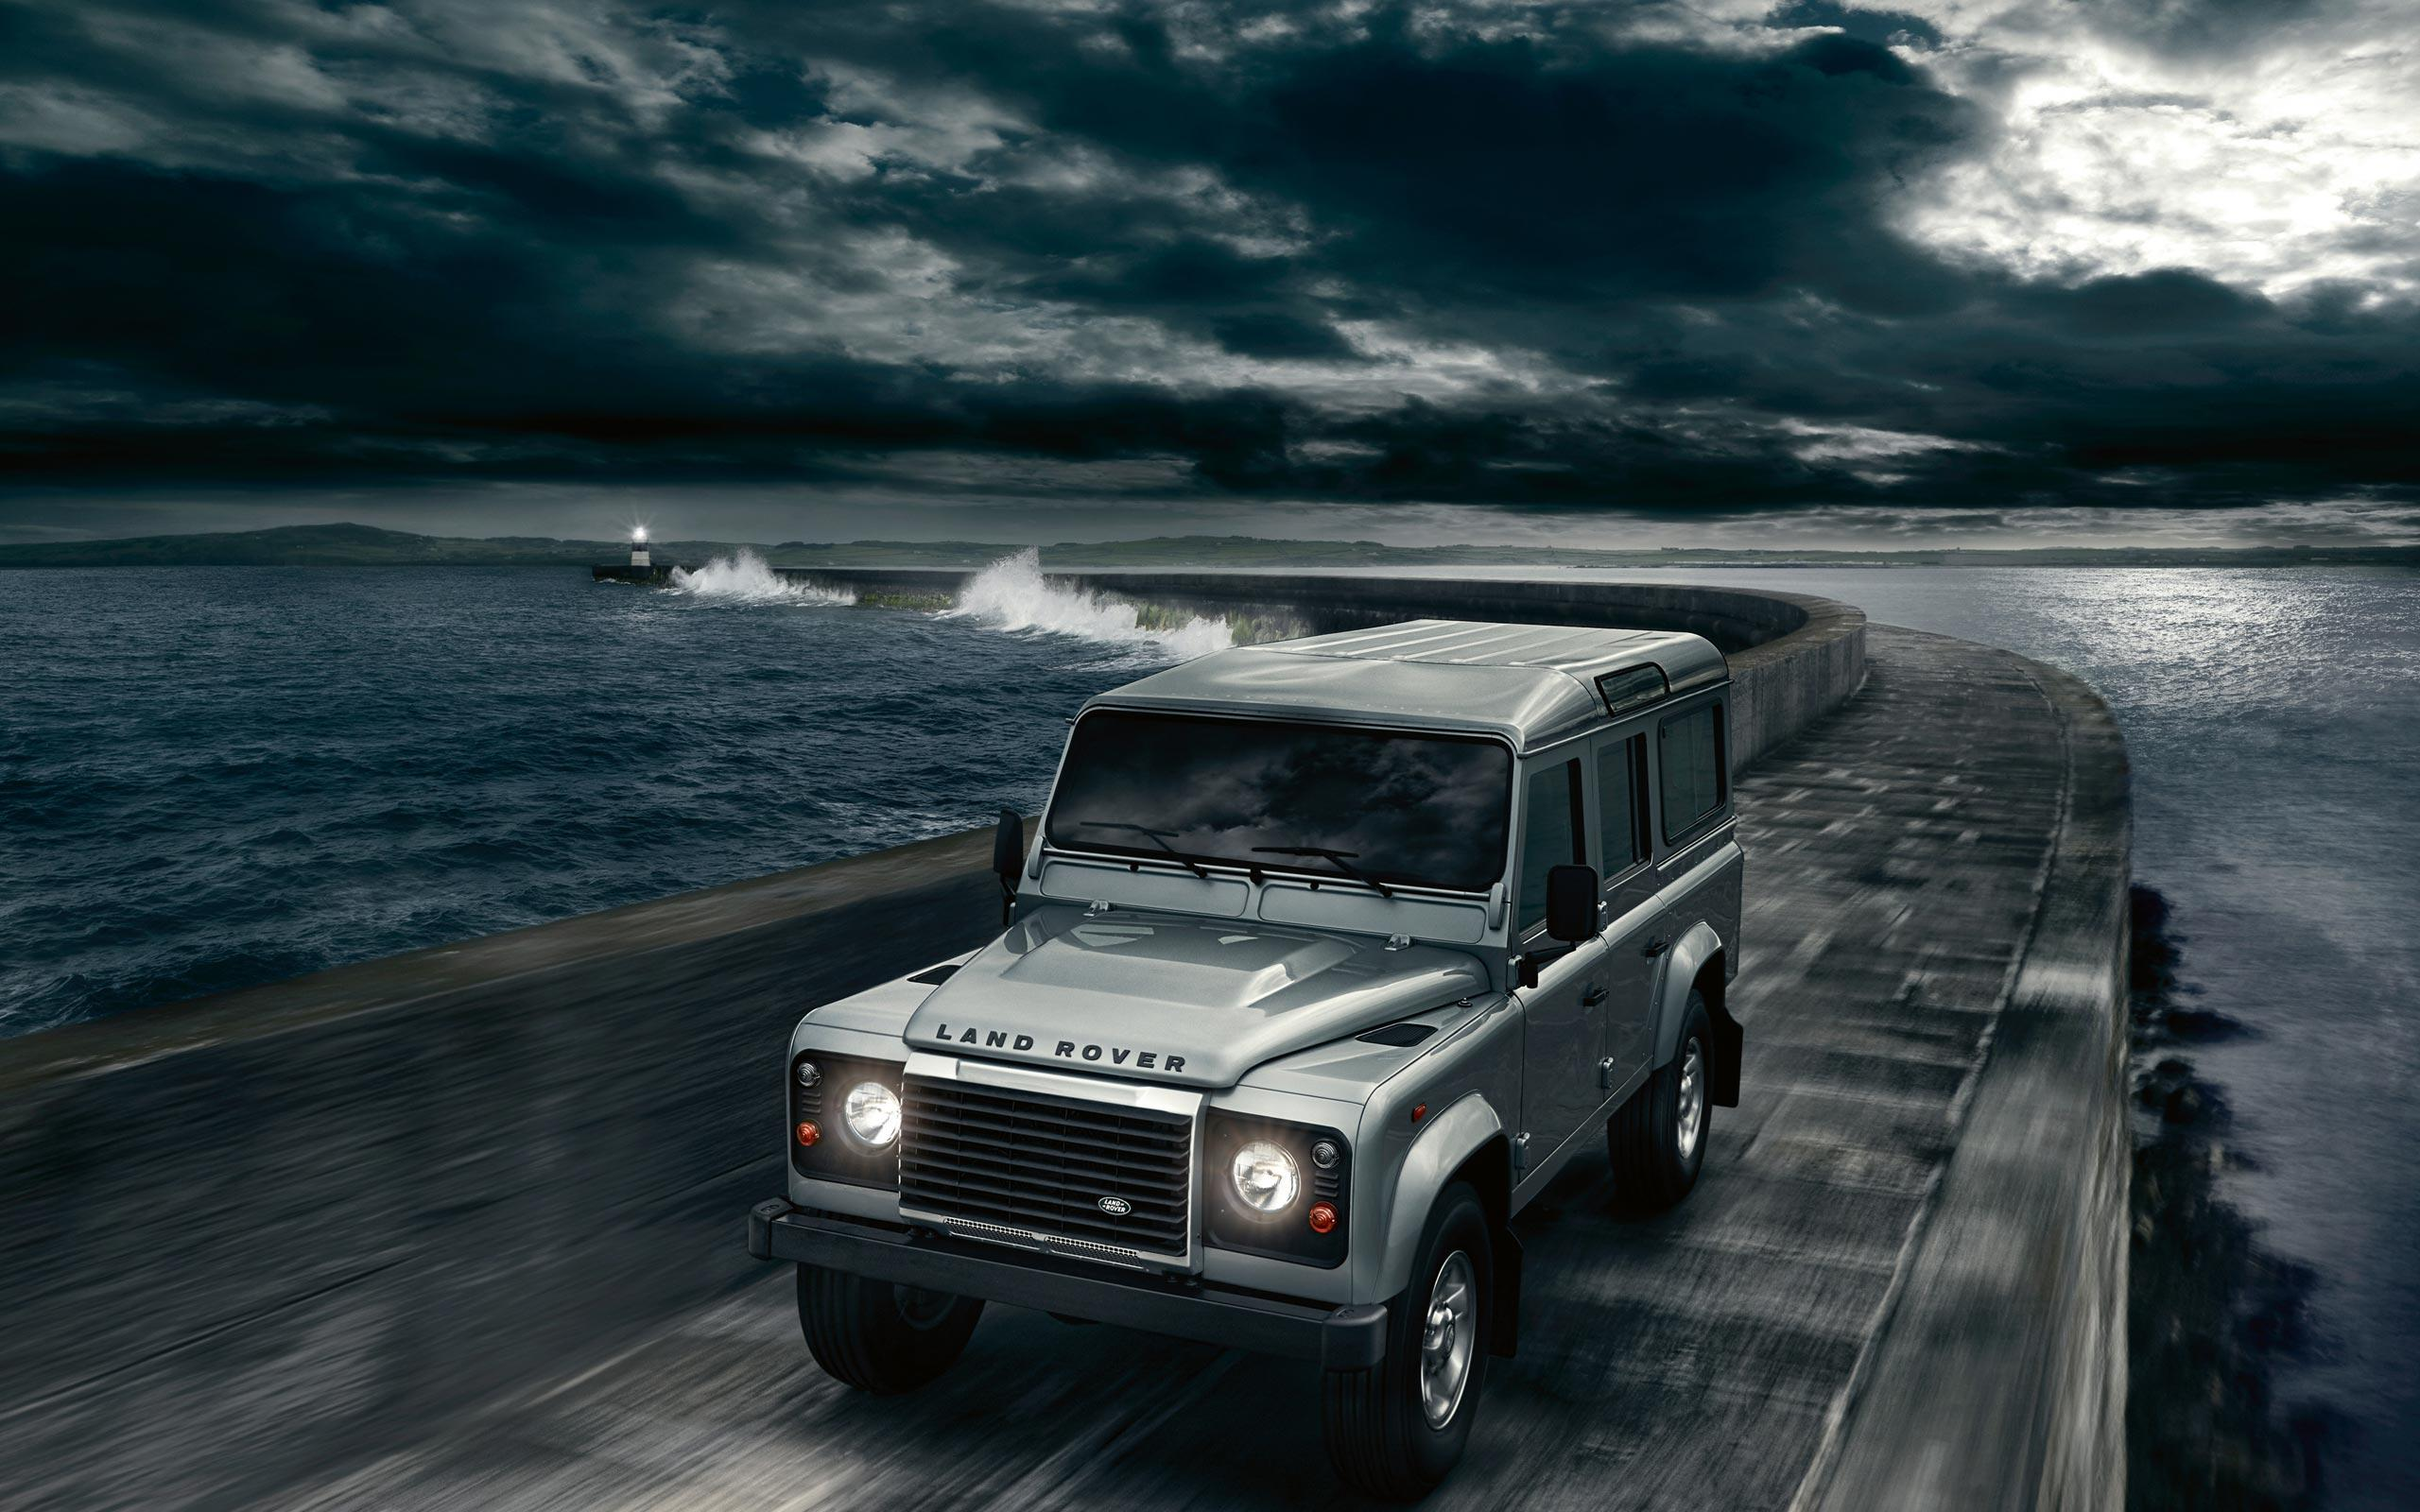 Land Rover Defender Wallpapers Wallpaper Cave